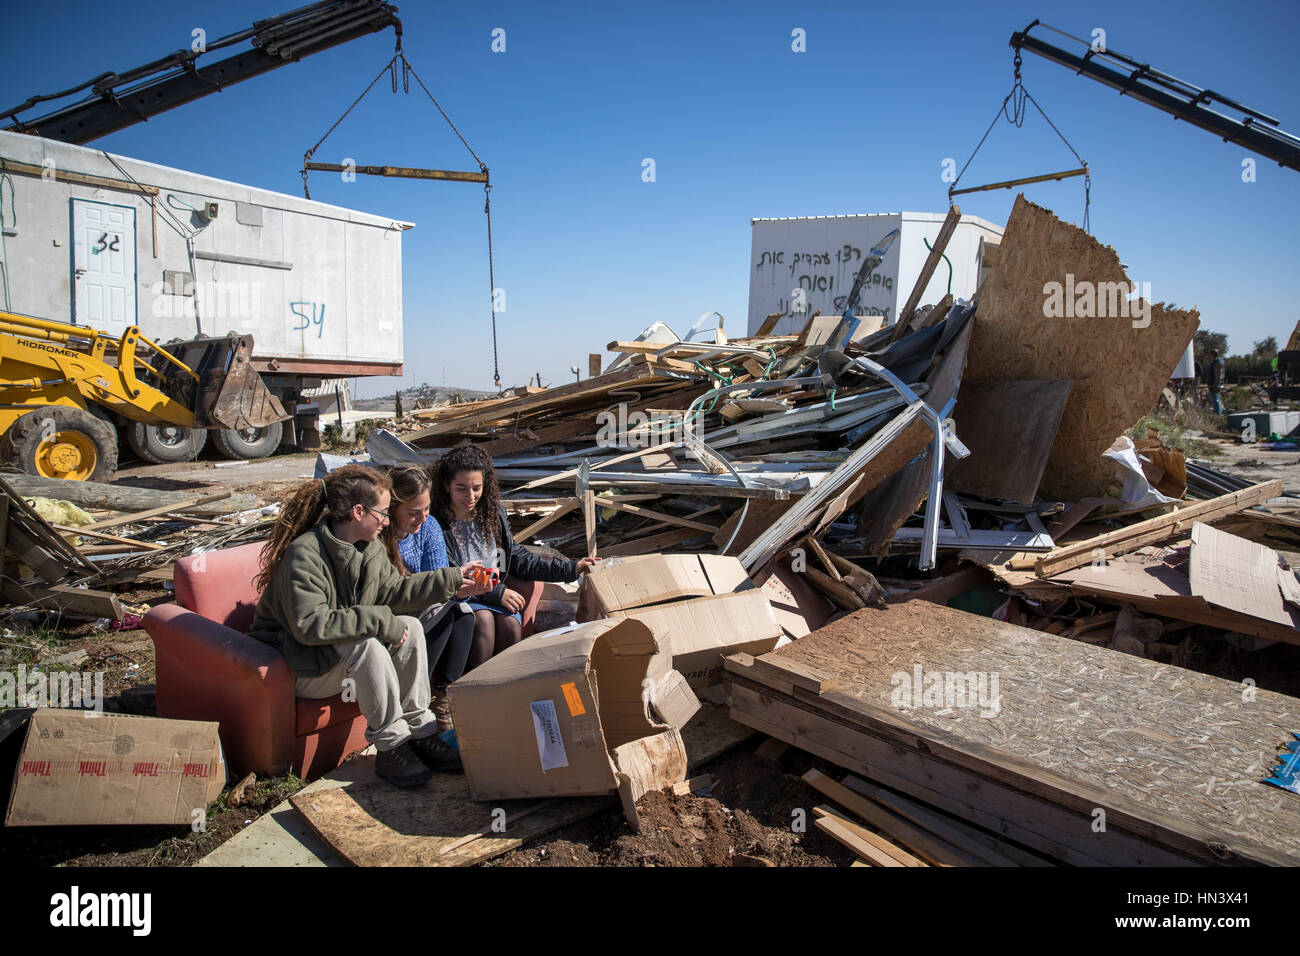 Amona. 7th Feb, 2017. An unauthorized building is being removed from the illegal settlement outpost of Amona inside - Stock Image